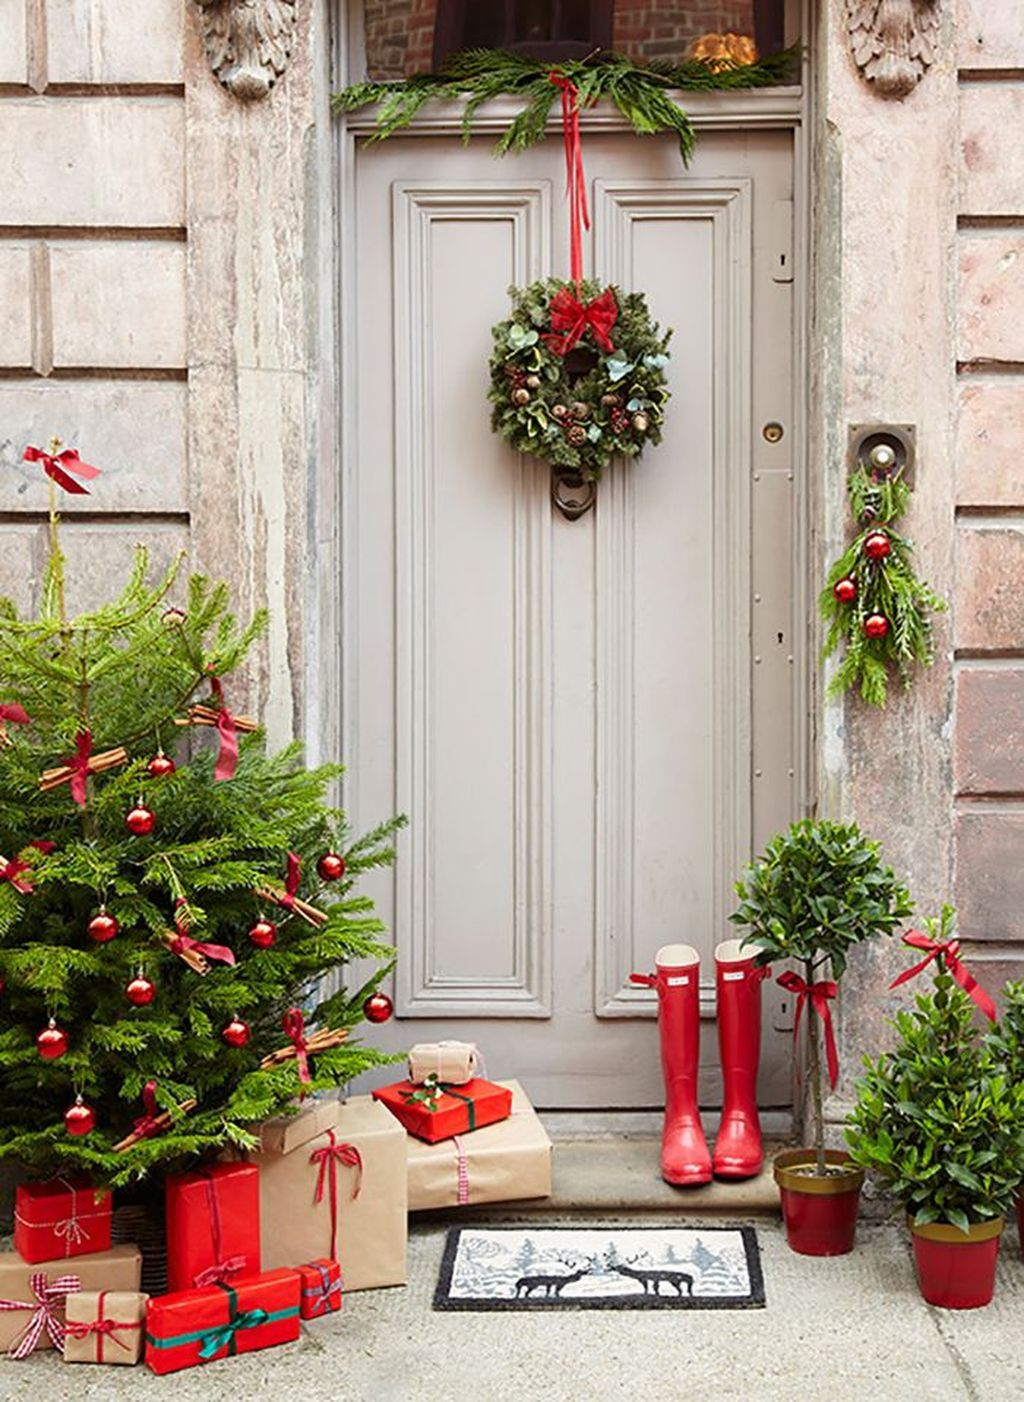 20 Stunning Christmas Door Decoration Ideas For Every Home ...